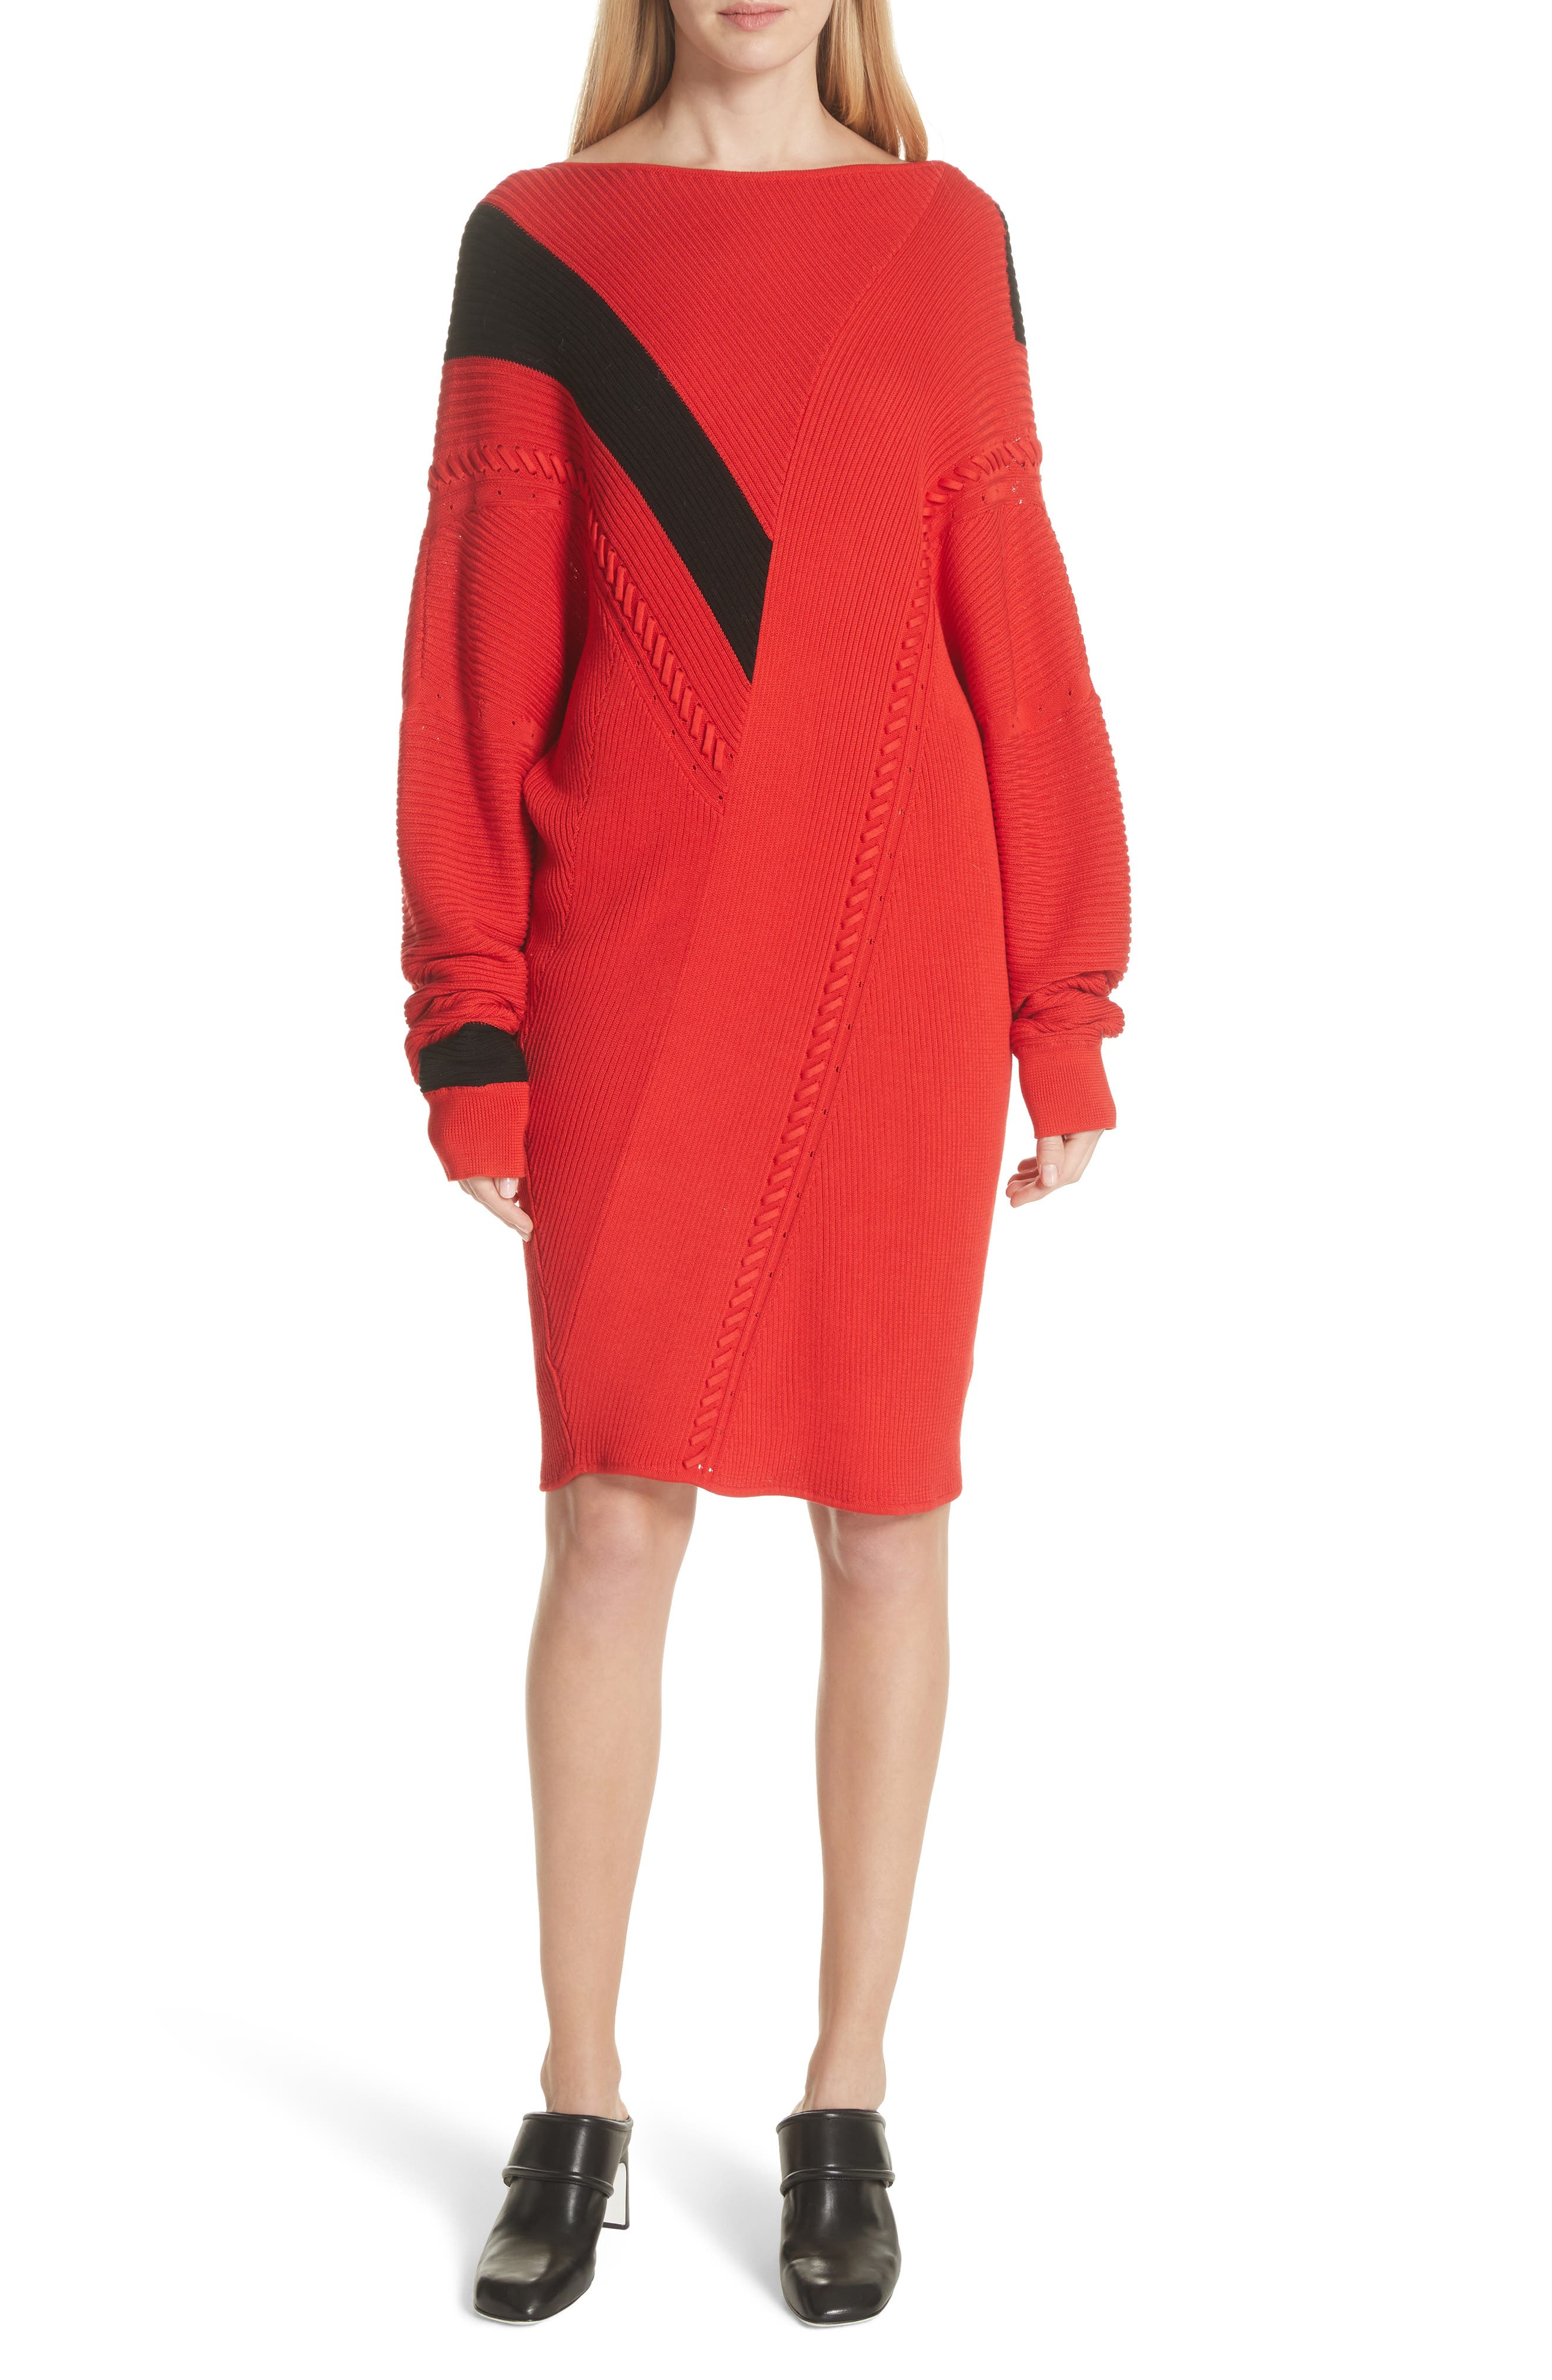 Cricket Reversible Sweater Dress,                             Main thumbnail 1, color,                             Red